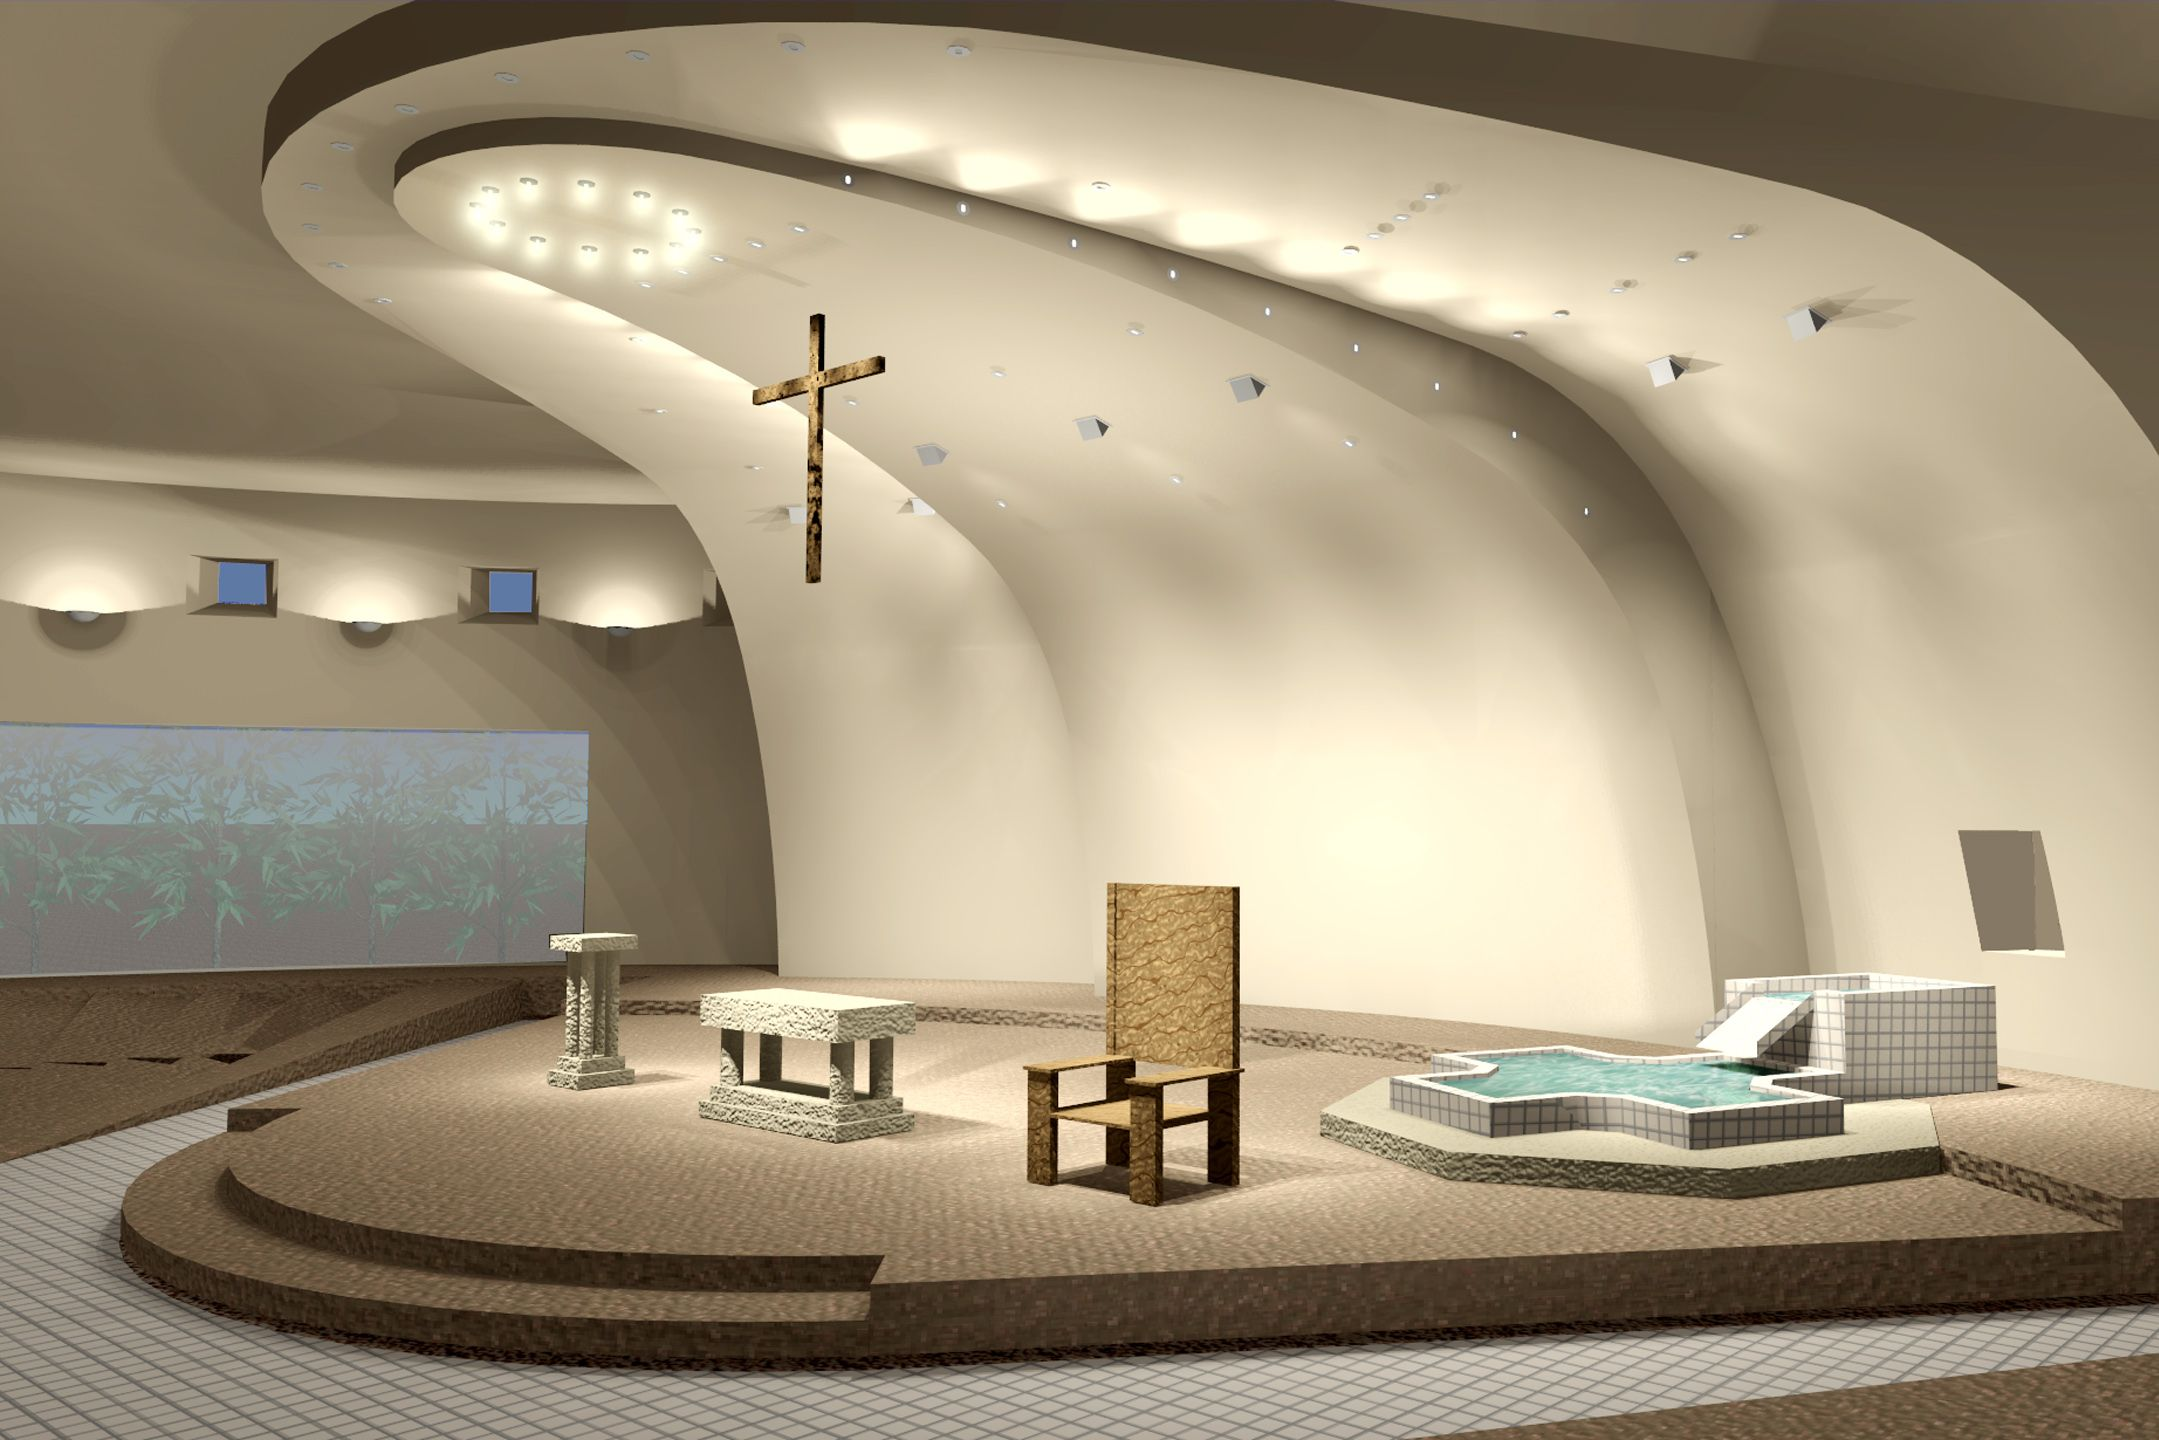 18 Best Photos Of Contemporary Church Interior Design Small